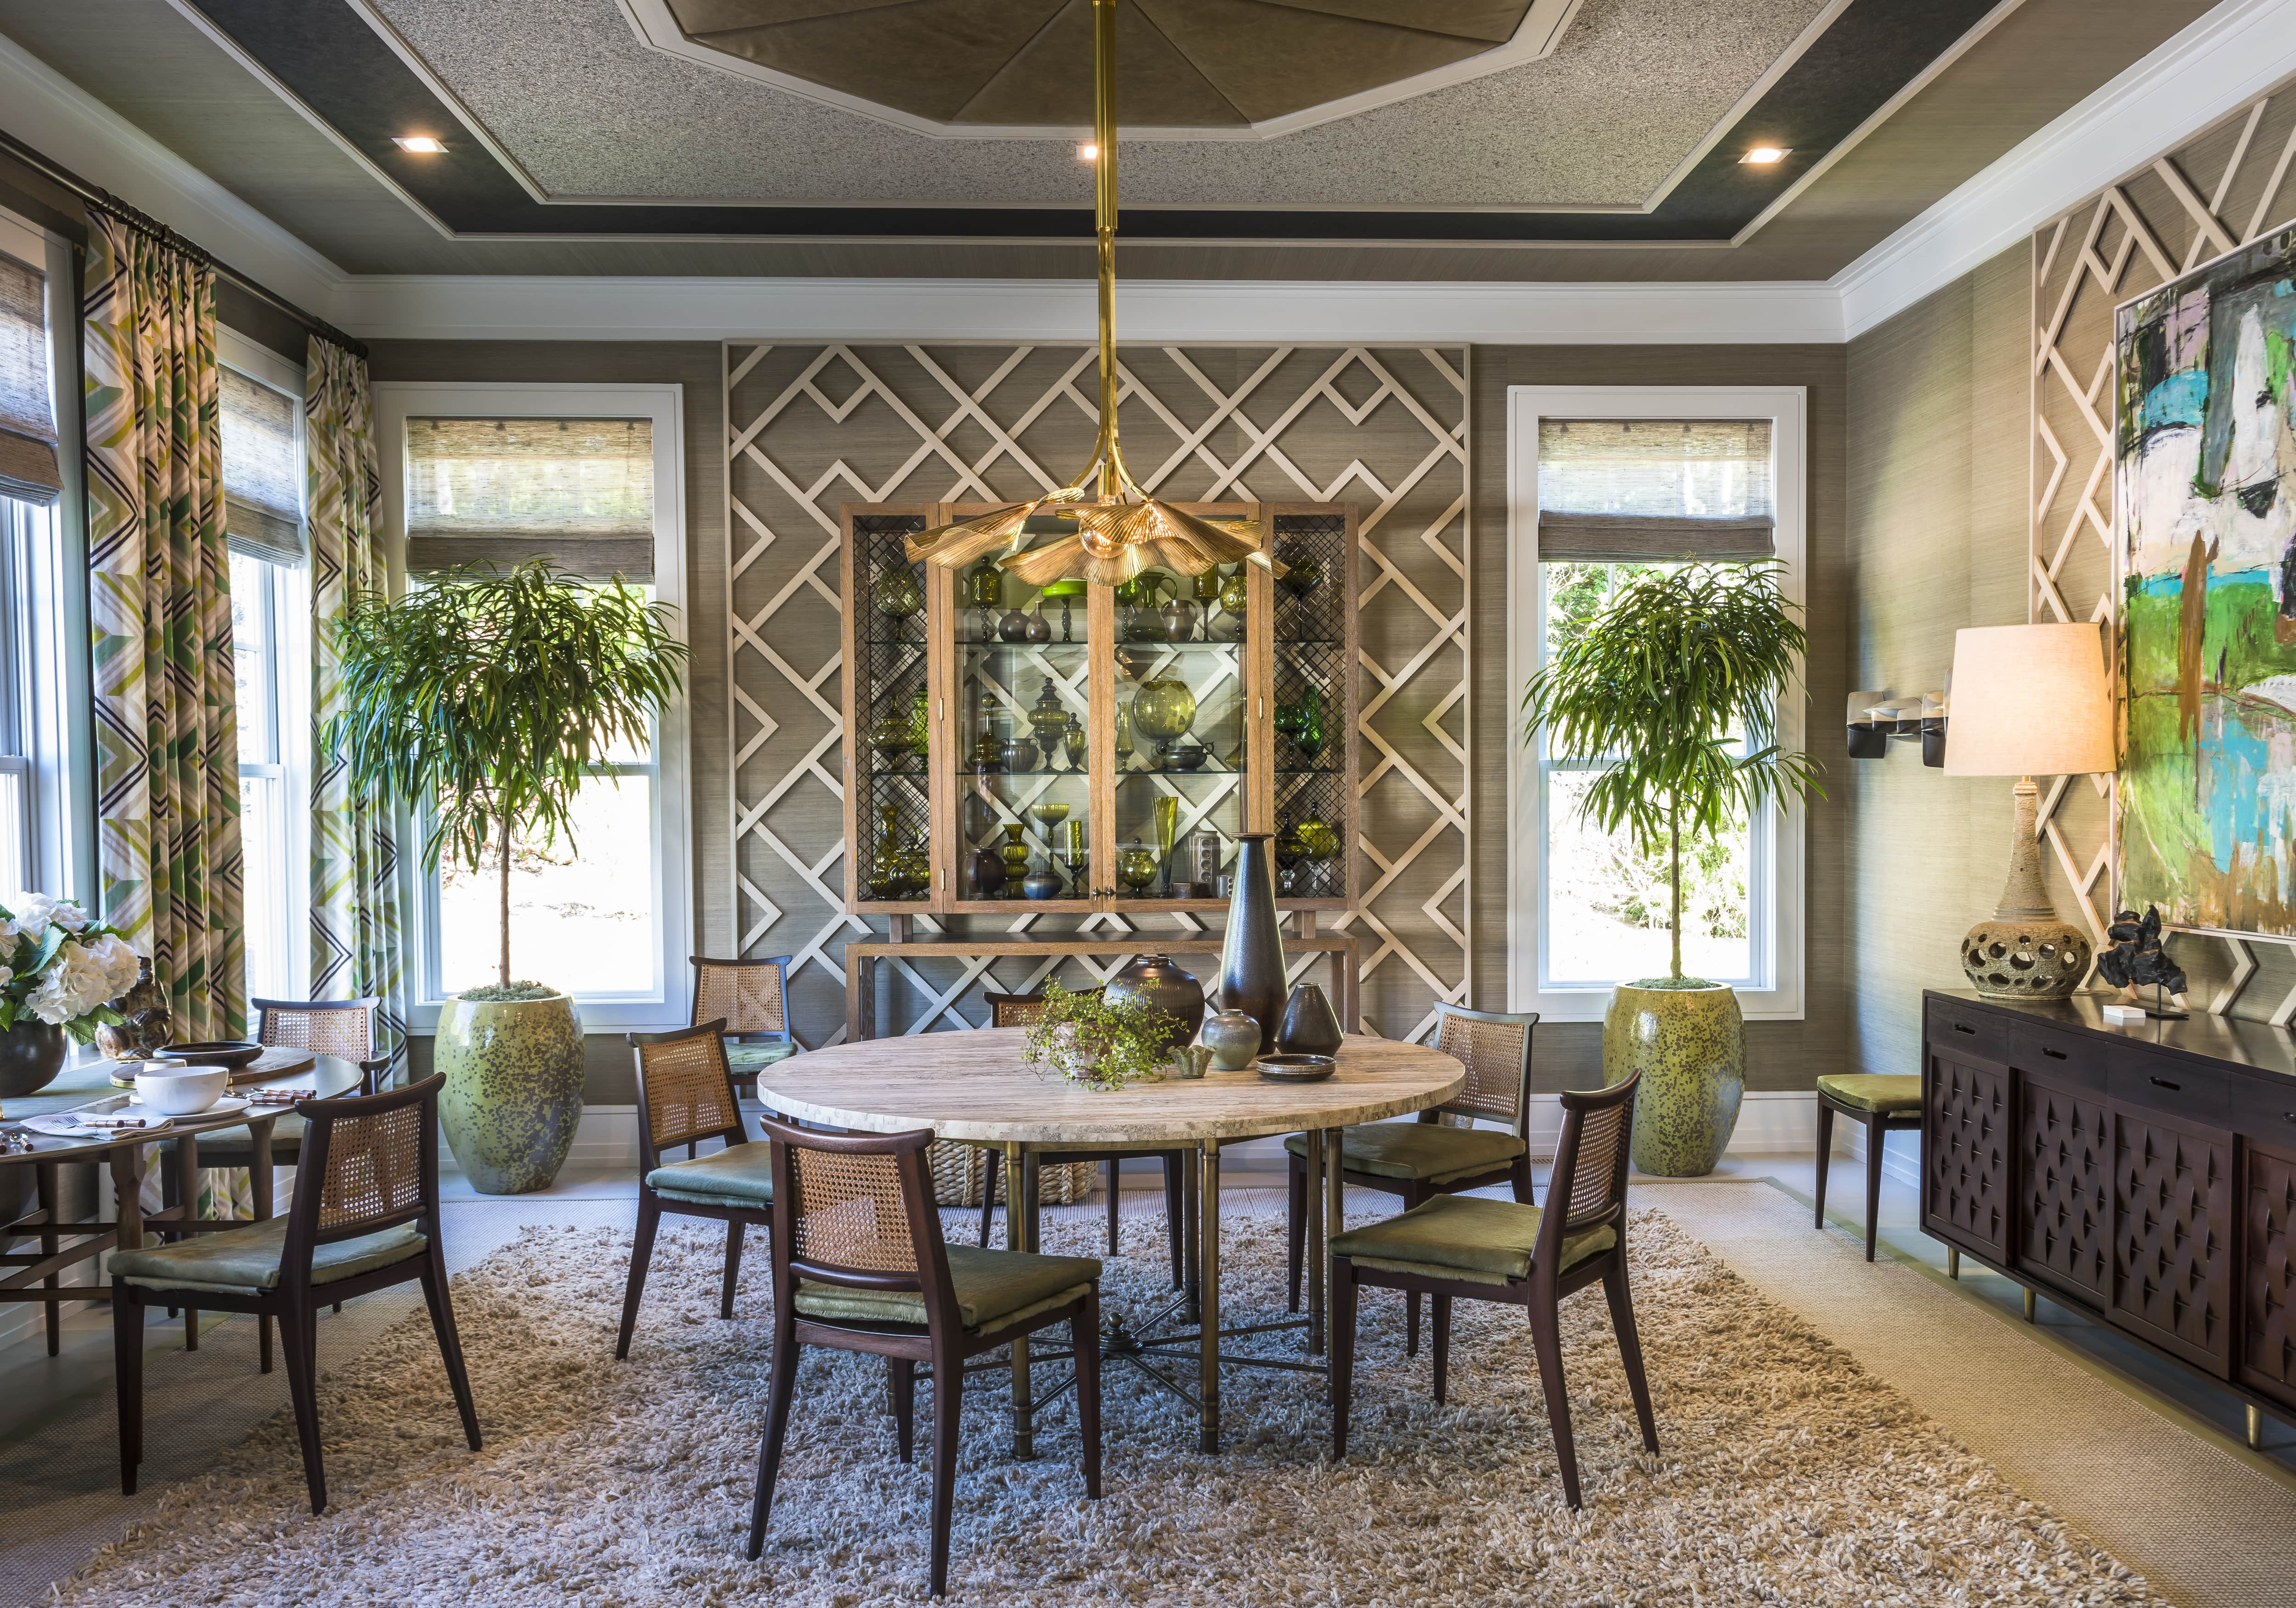 Metrie's Very Square Collection scene III interior finishings make an appearance in Gideon Mendelson's design for the Hamptons Designer Showhouse from Traditional Home's July/August issue.  Design: Gideon Mendelson | Photography: Alan Barry